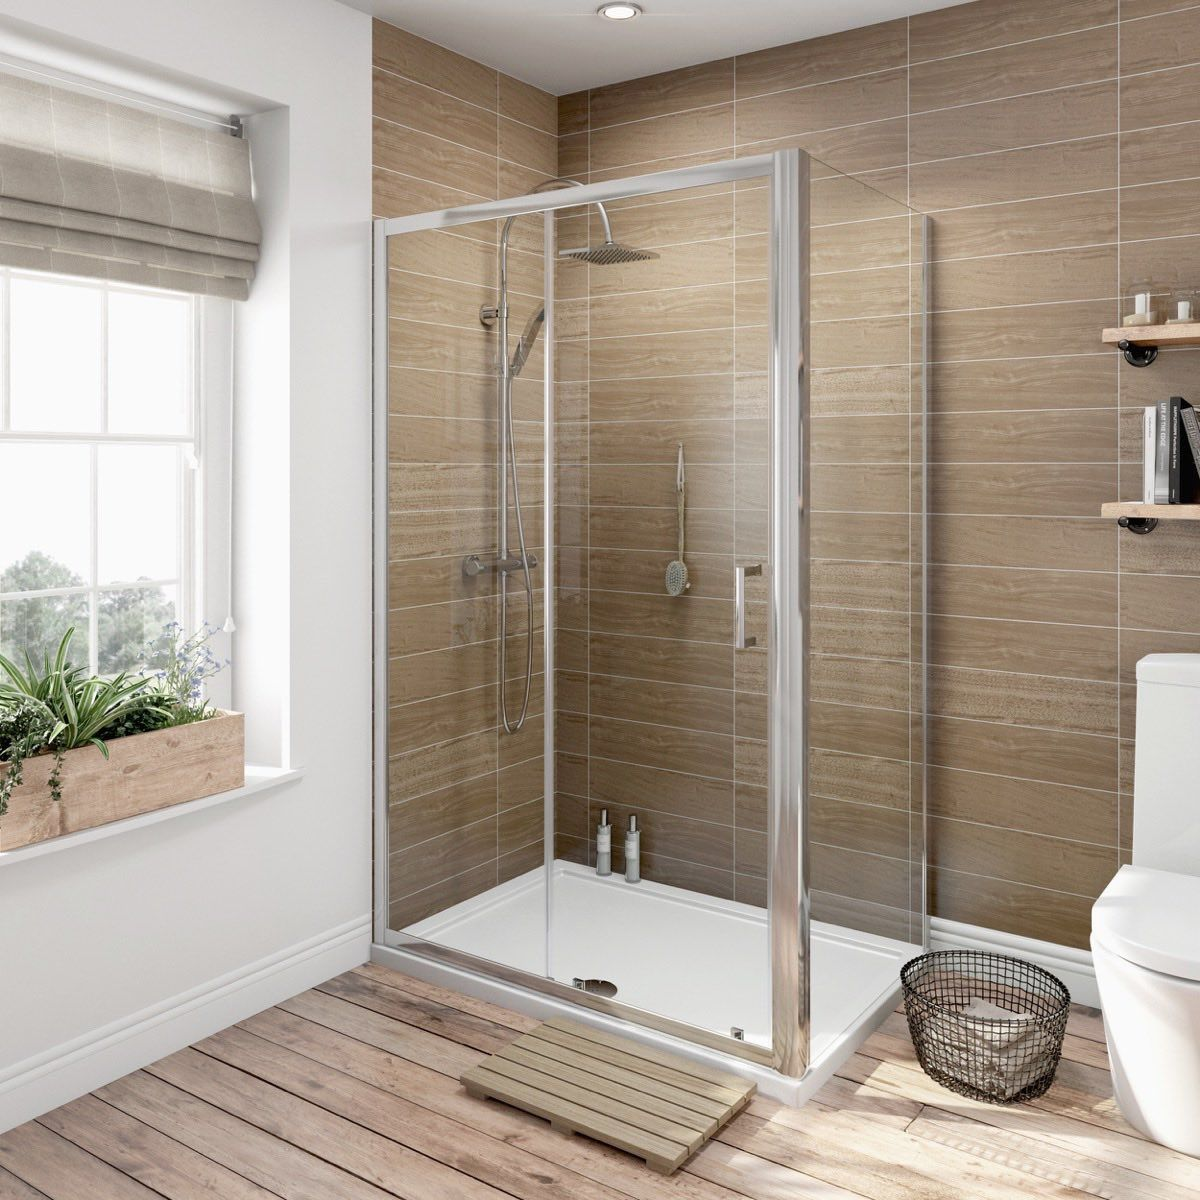 Orchard 6mm sliding door rectangular shower enclosure | Shower ...